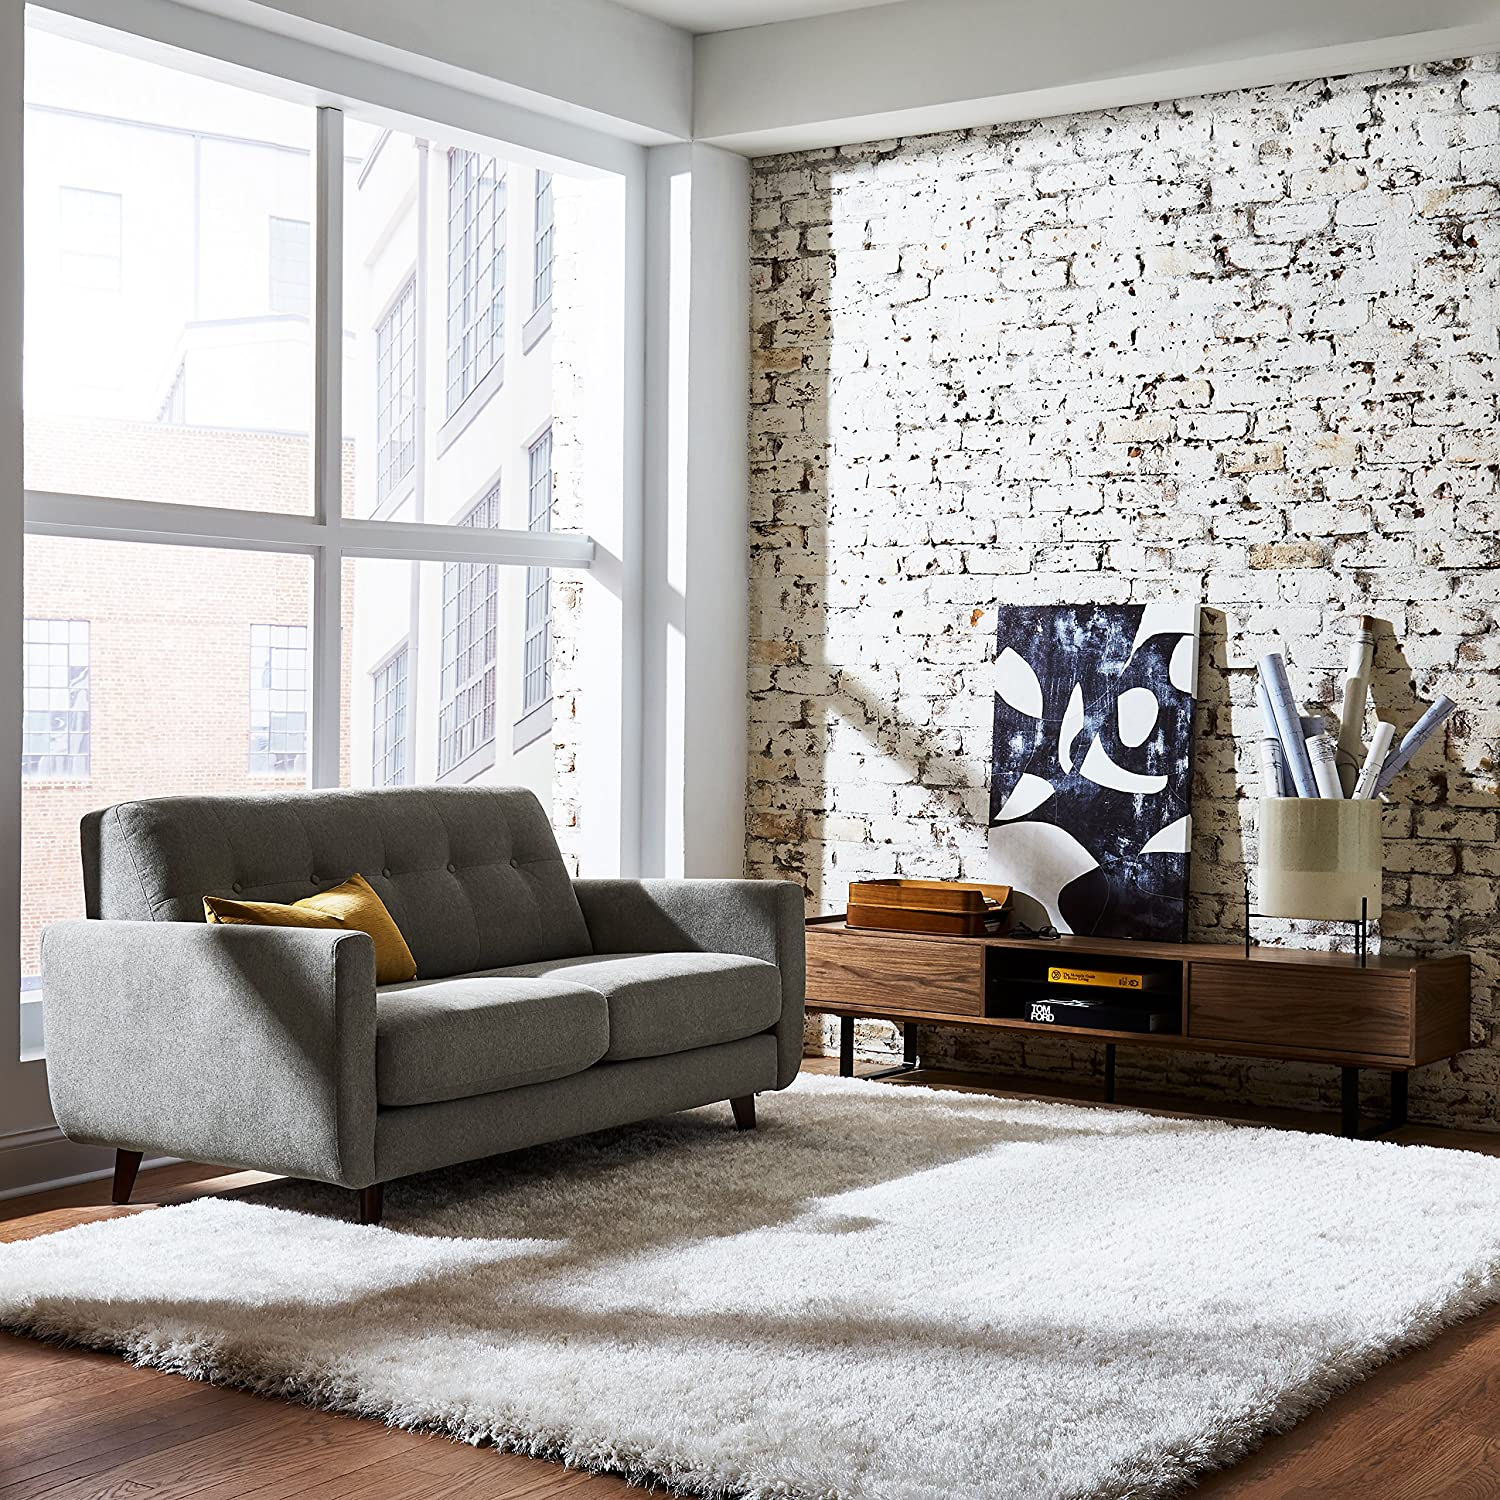 Shell Rivet Sloane Mid-Century Tufted Modern Accent Chair